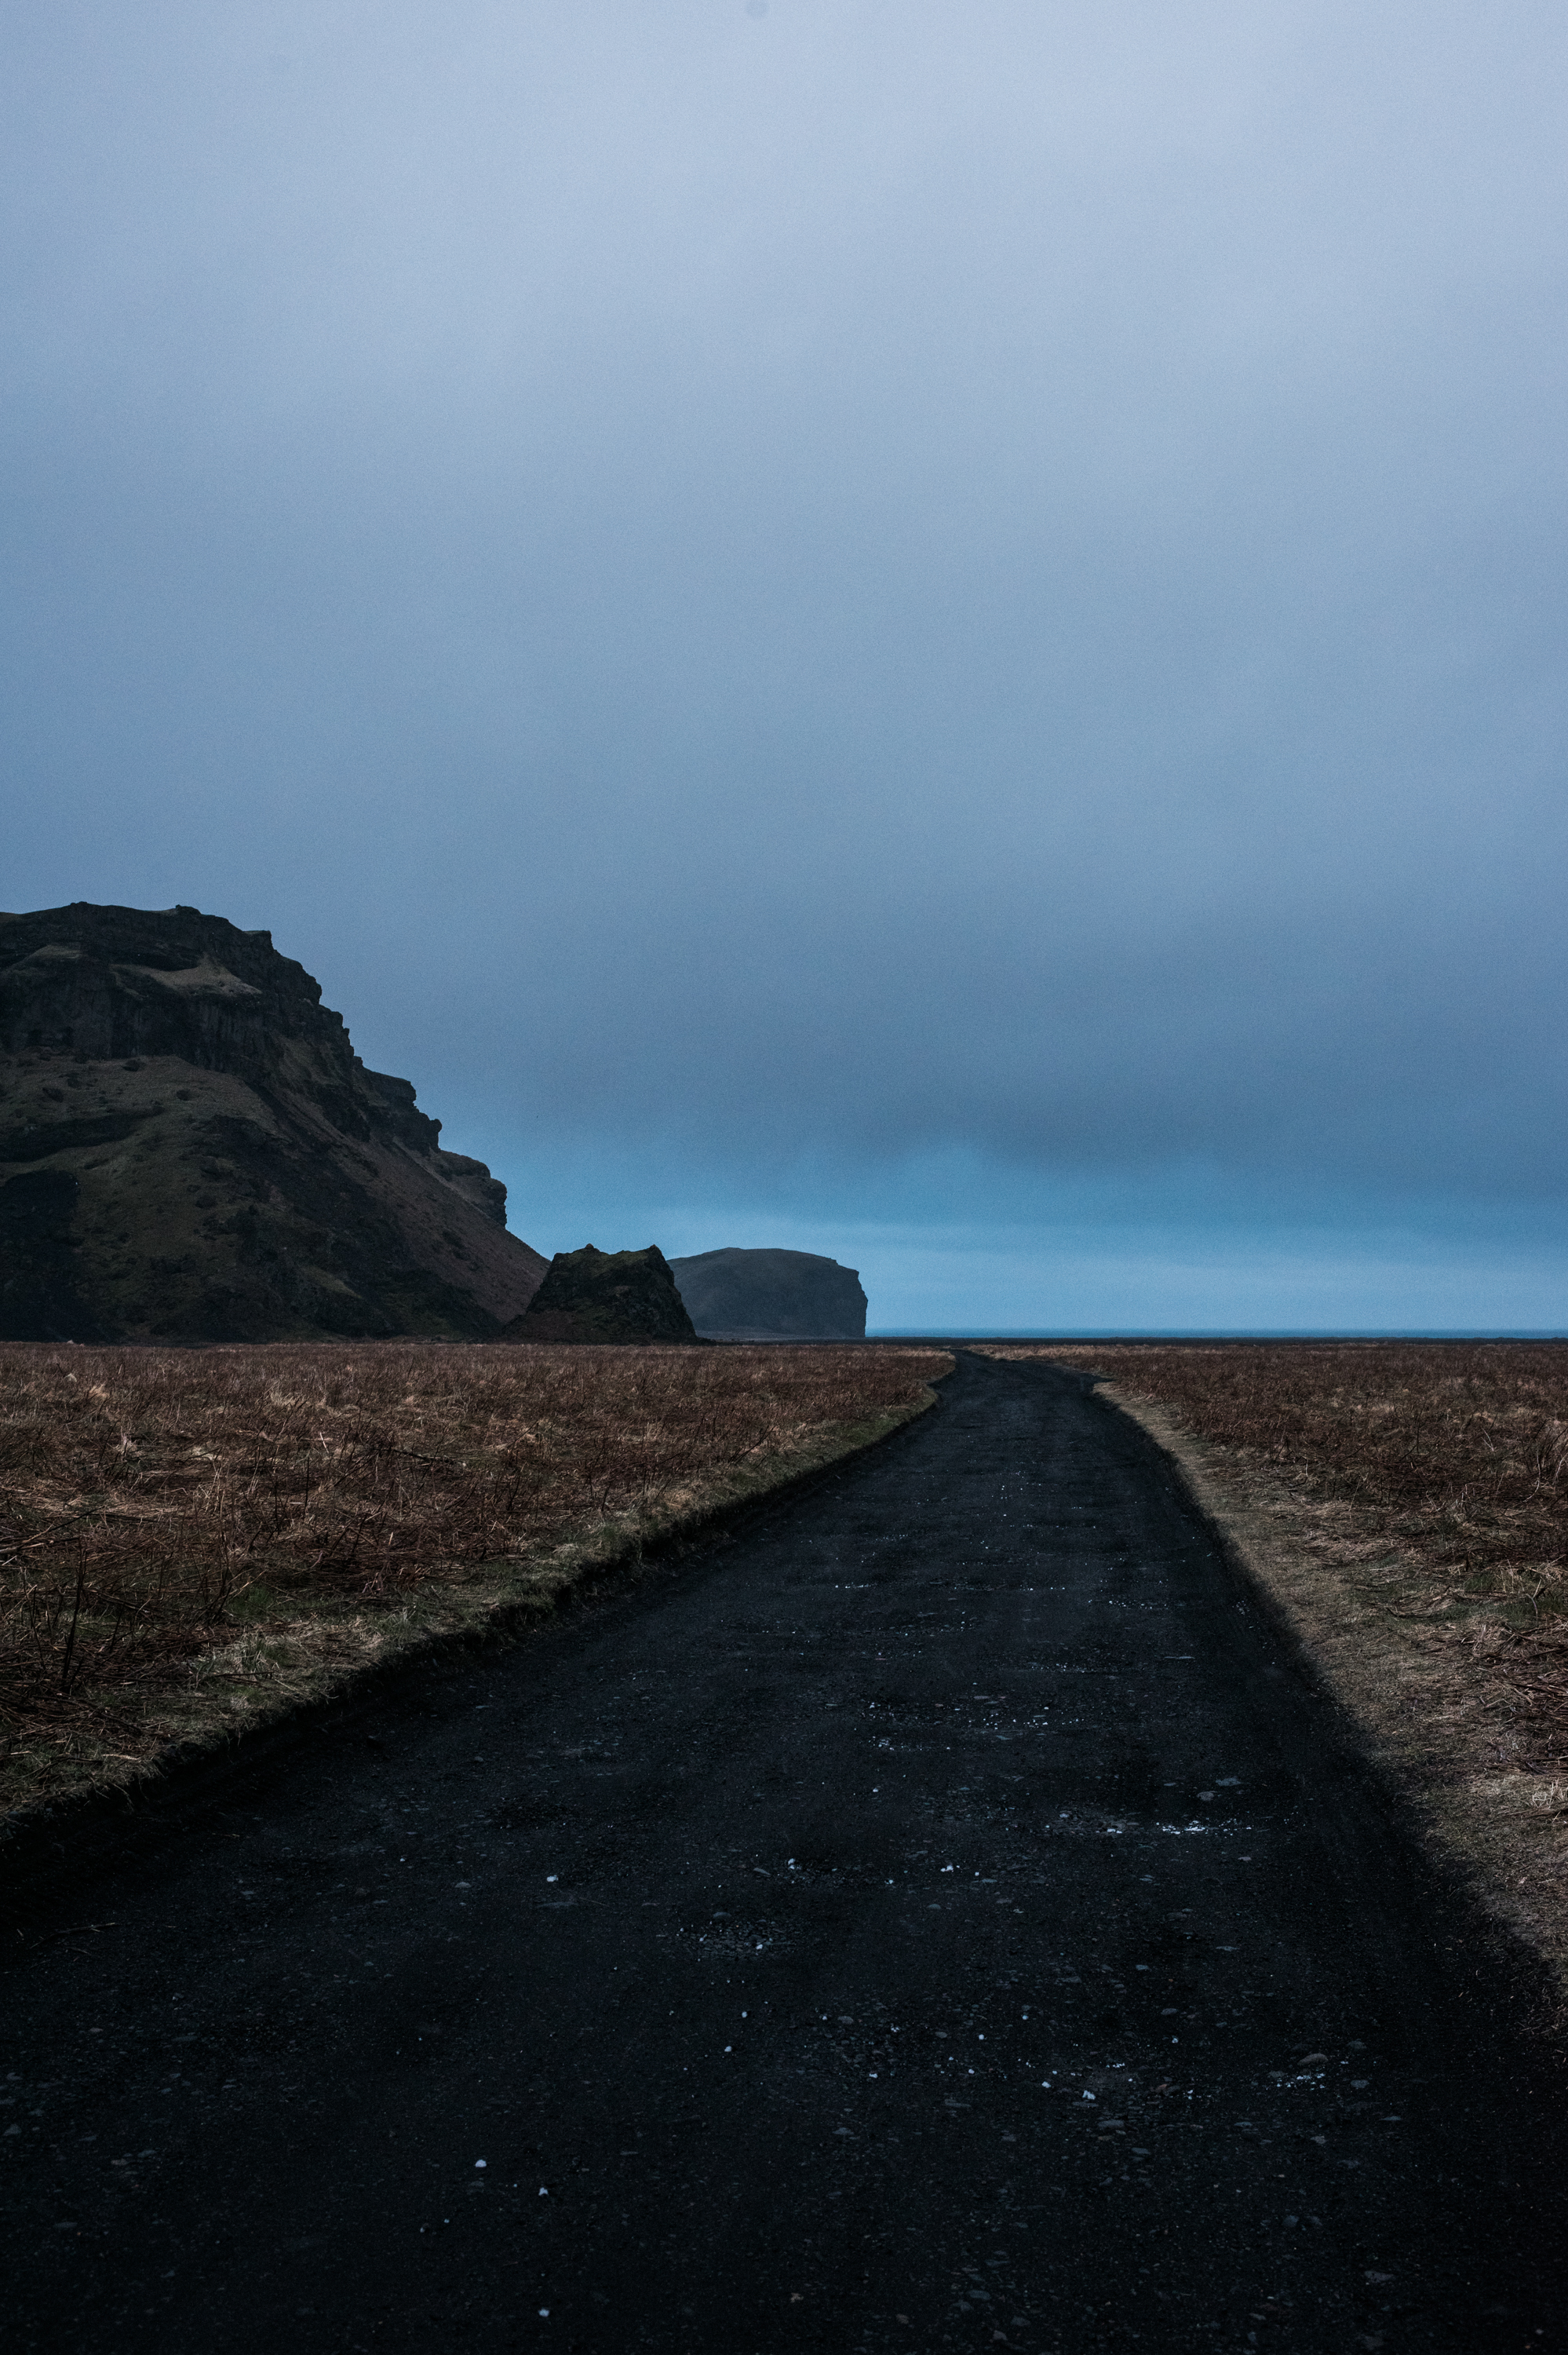 ICELAND_WOMAN_PHOTOGRAPHER_TARASHUPE_OUTDOOR_PHOTOGRAPHY_129.jpg